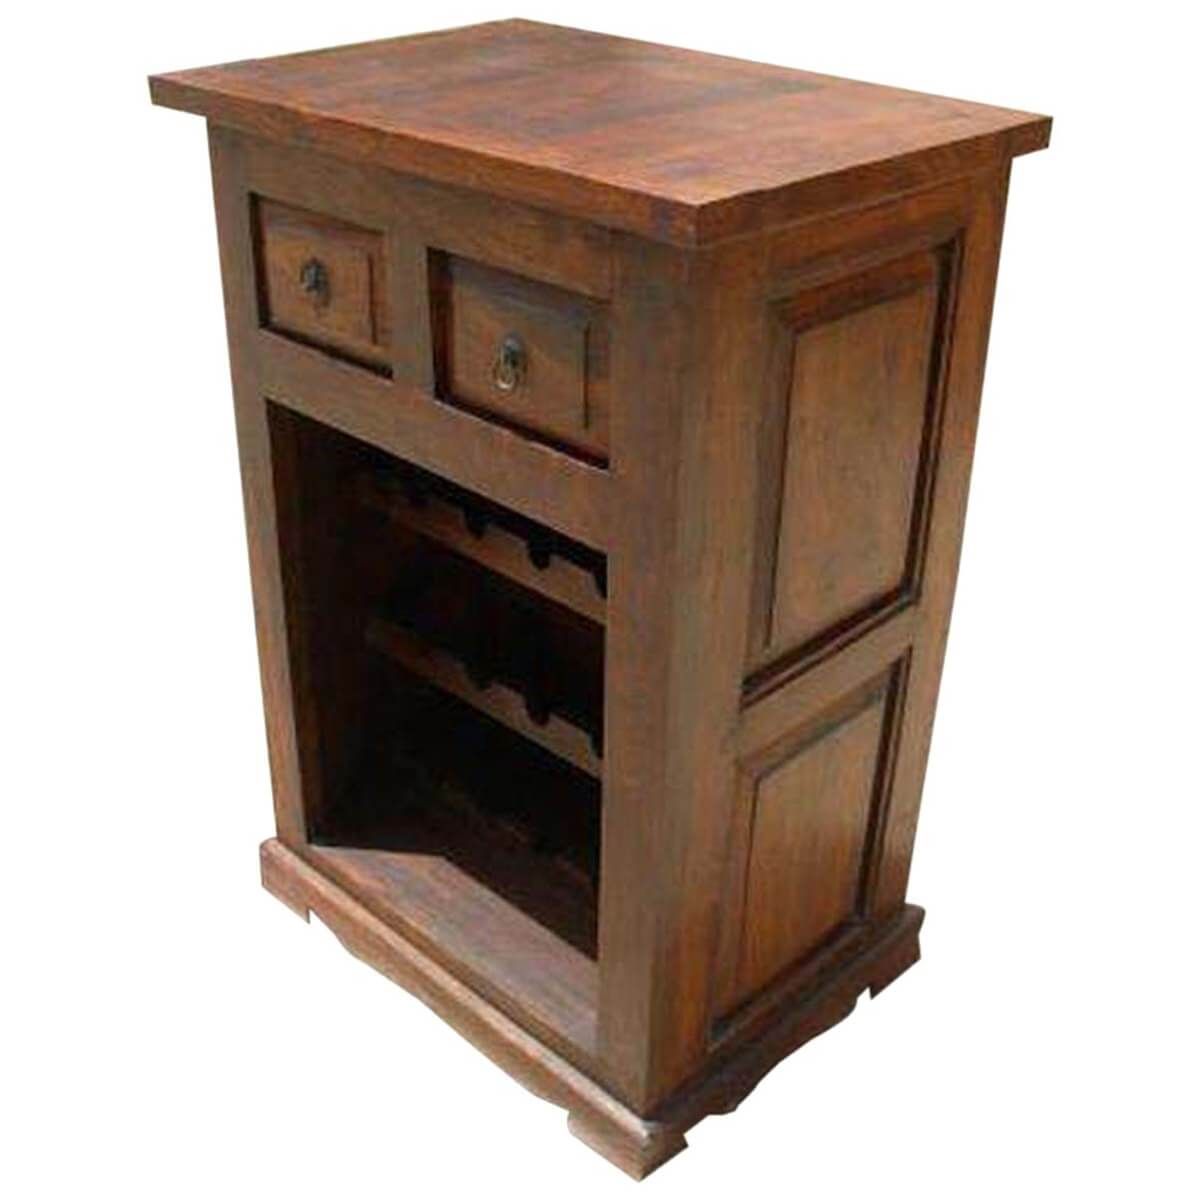 Renelso solid wood wine bottles rack drawer cabinet